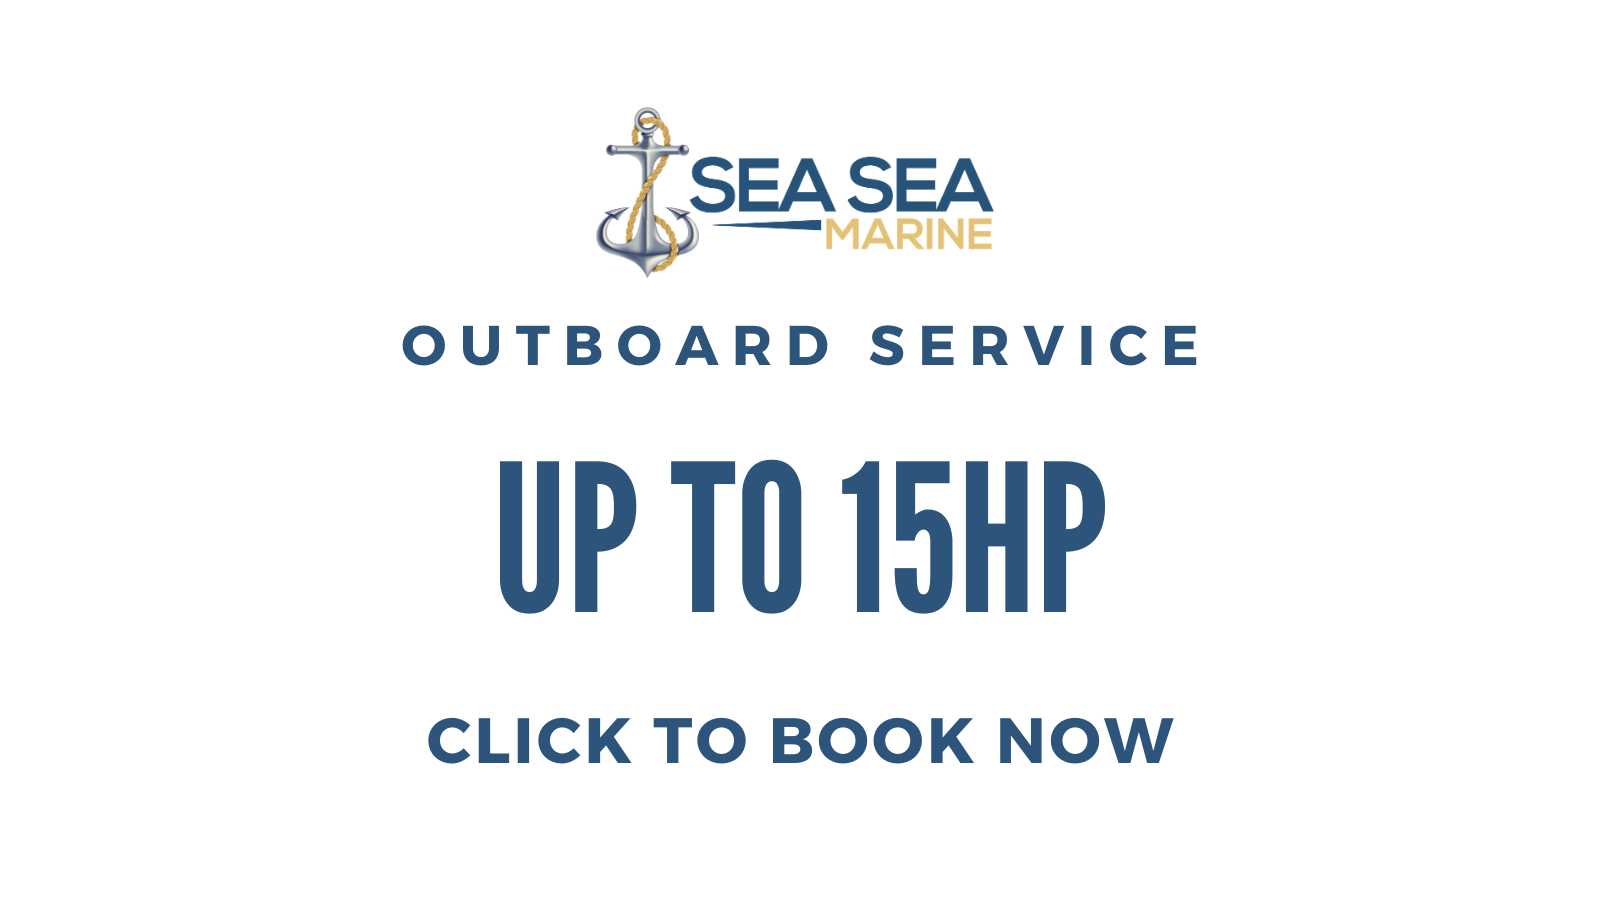 Outboard Service (up to 15HP)